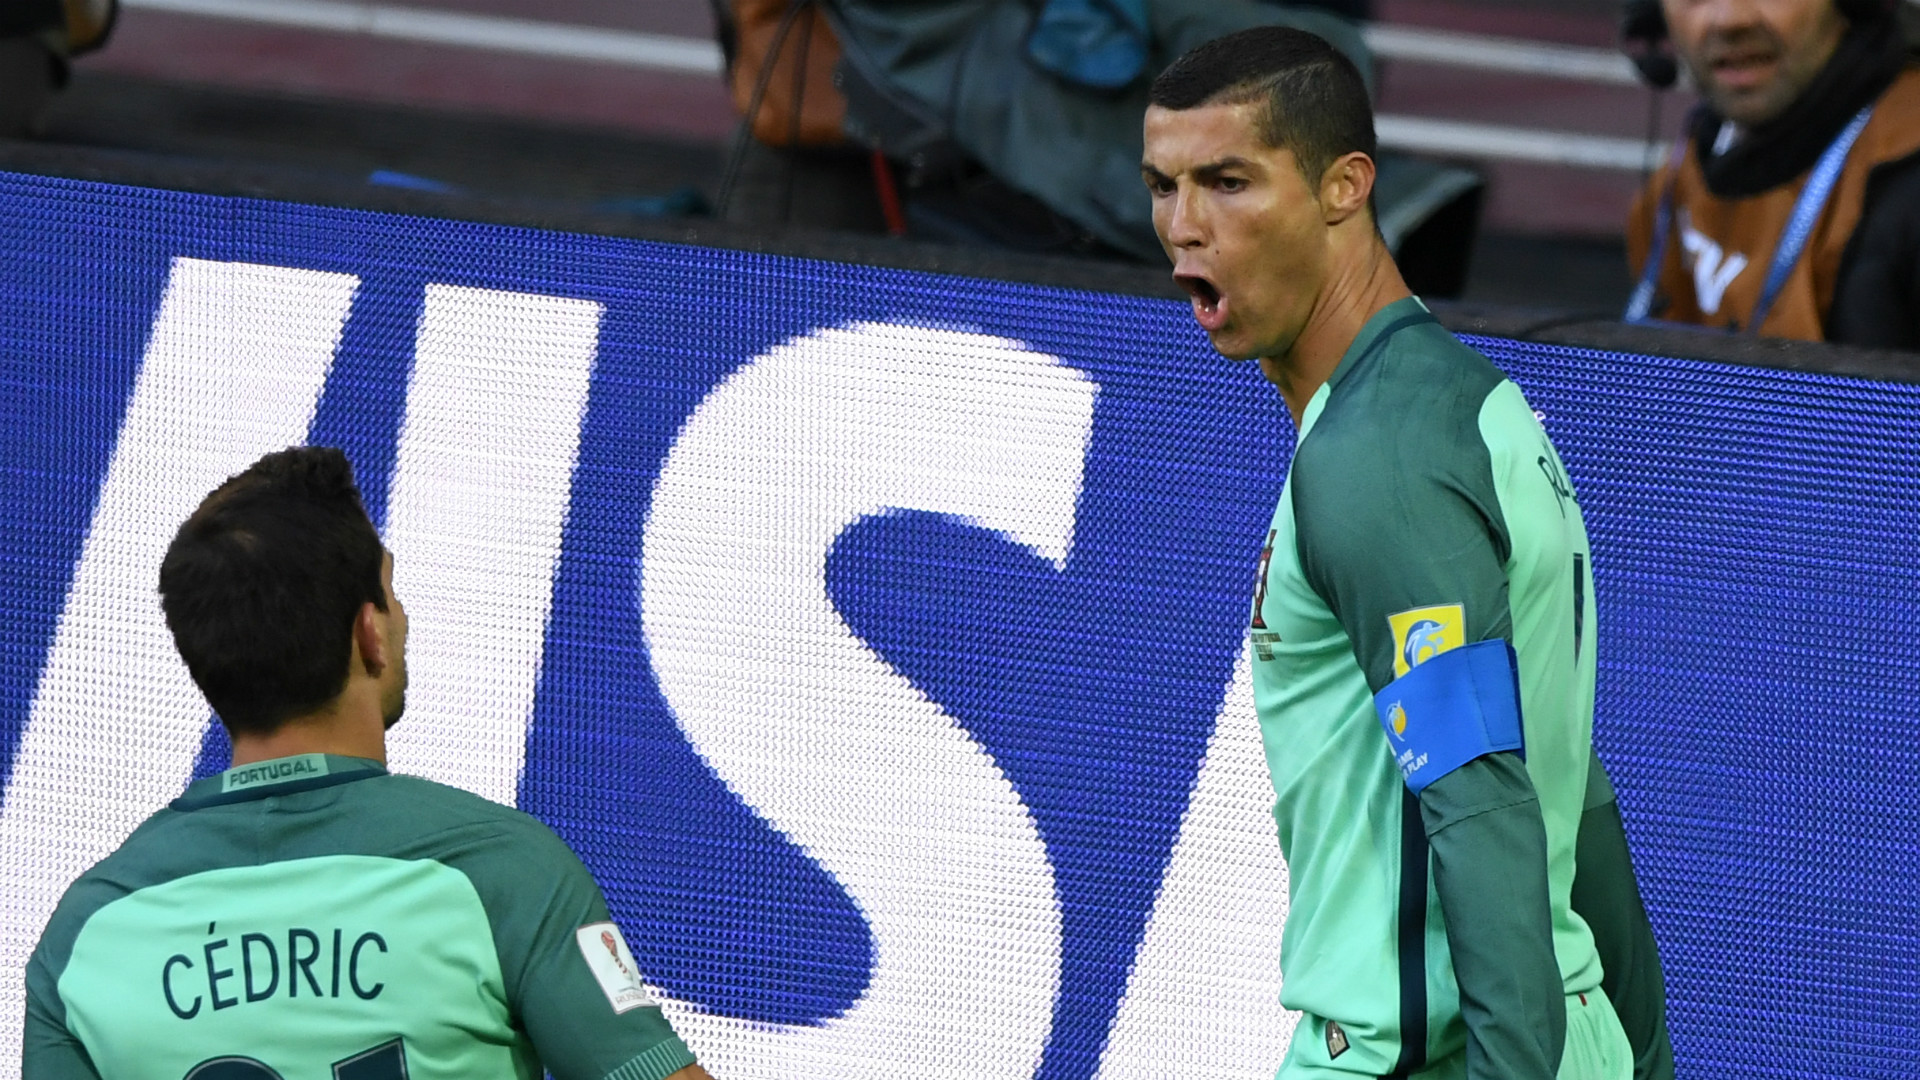 Cristiano Ronaldo at the forefront as Portugal defeat Russia [GALLERY & HIGHLIGHTS]